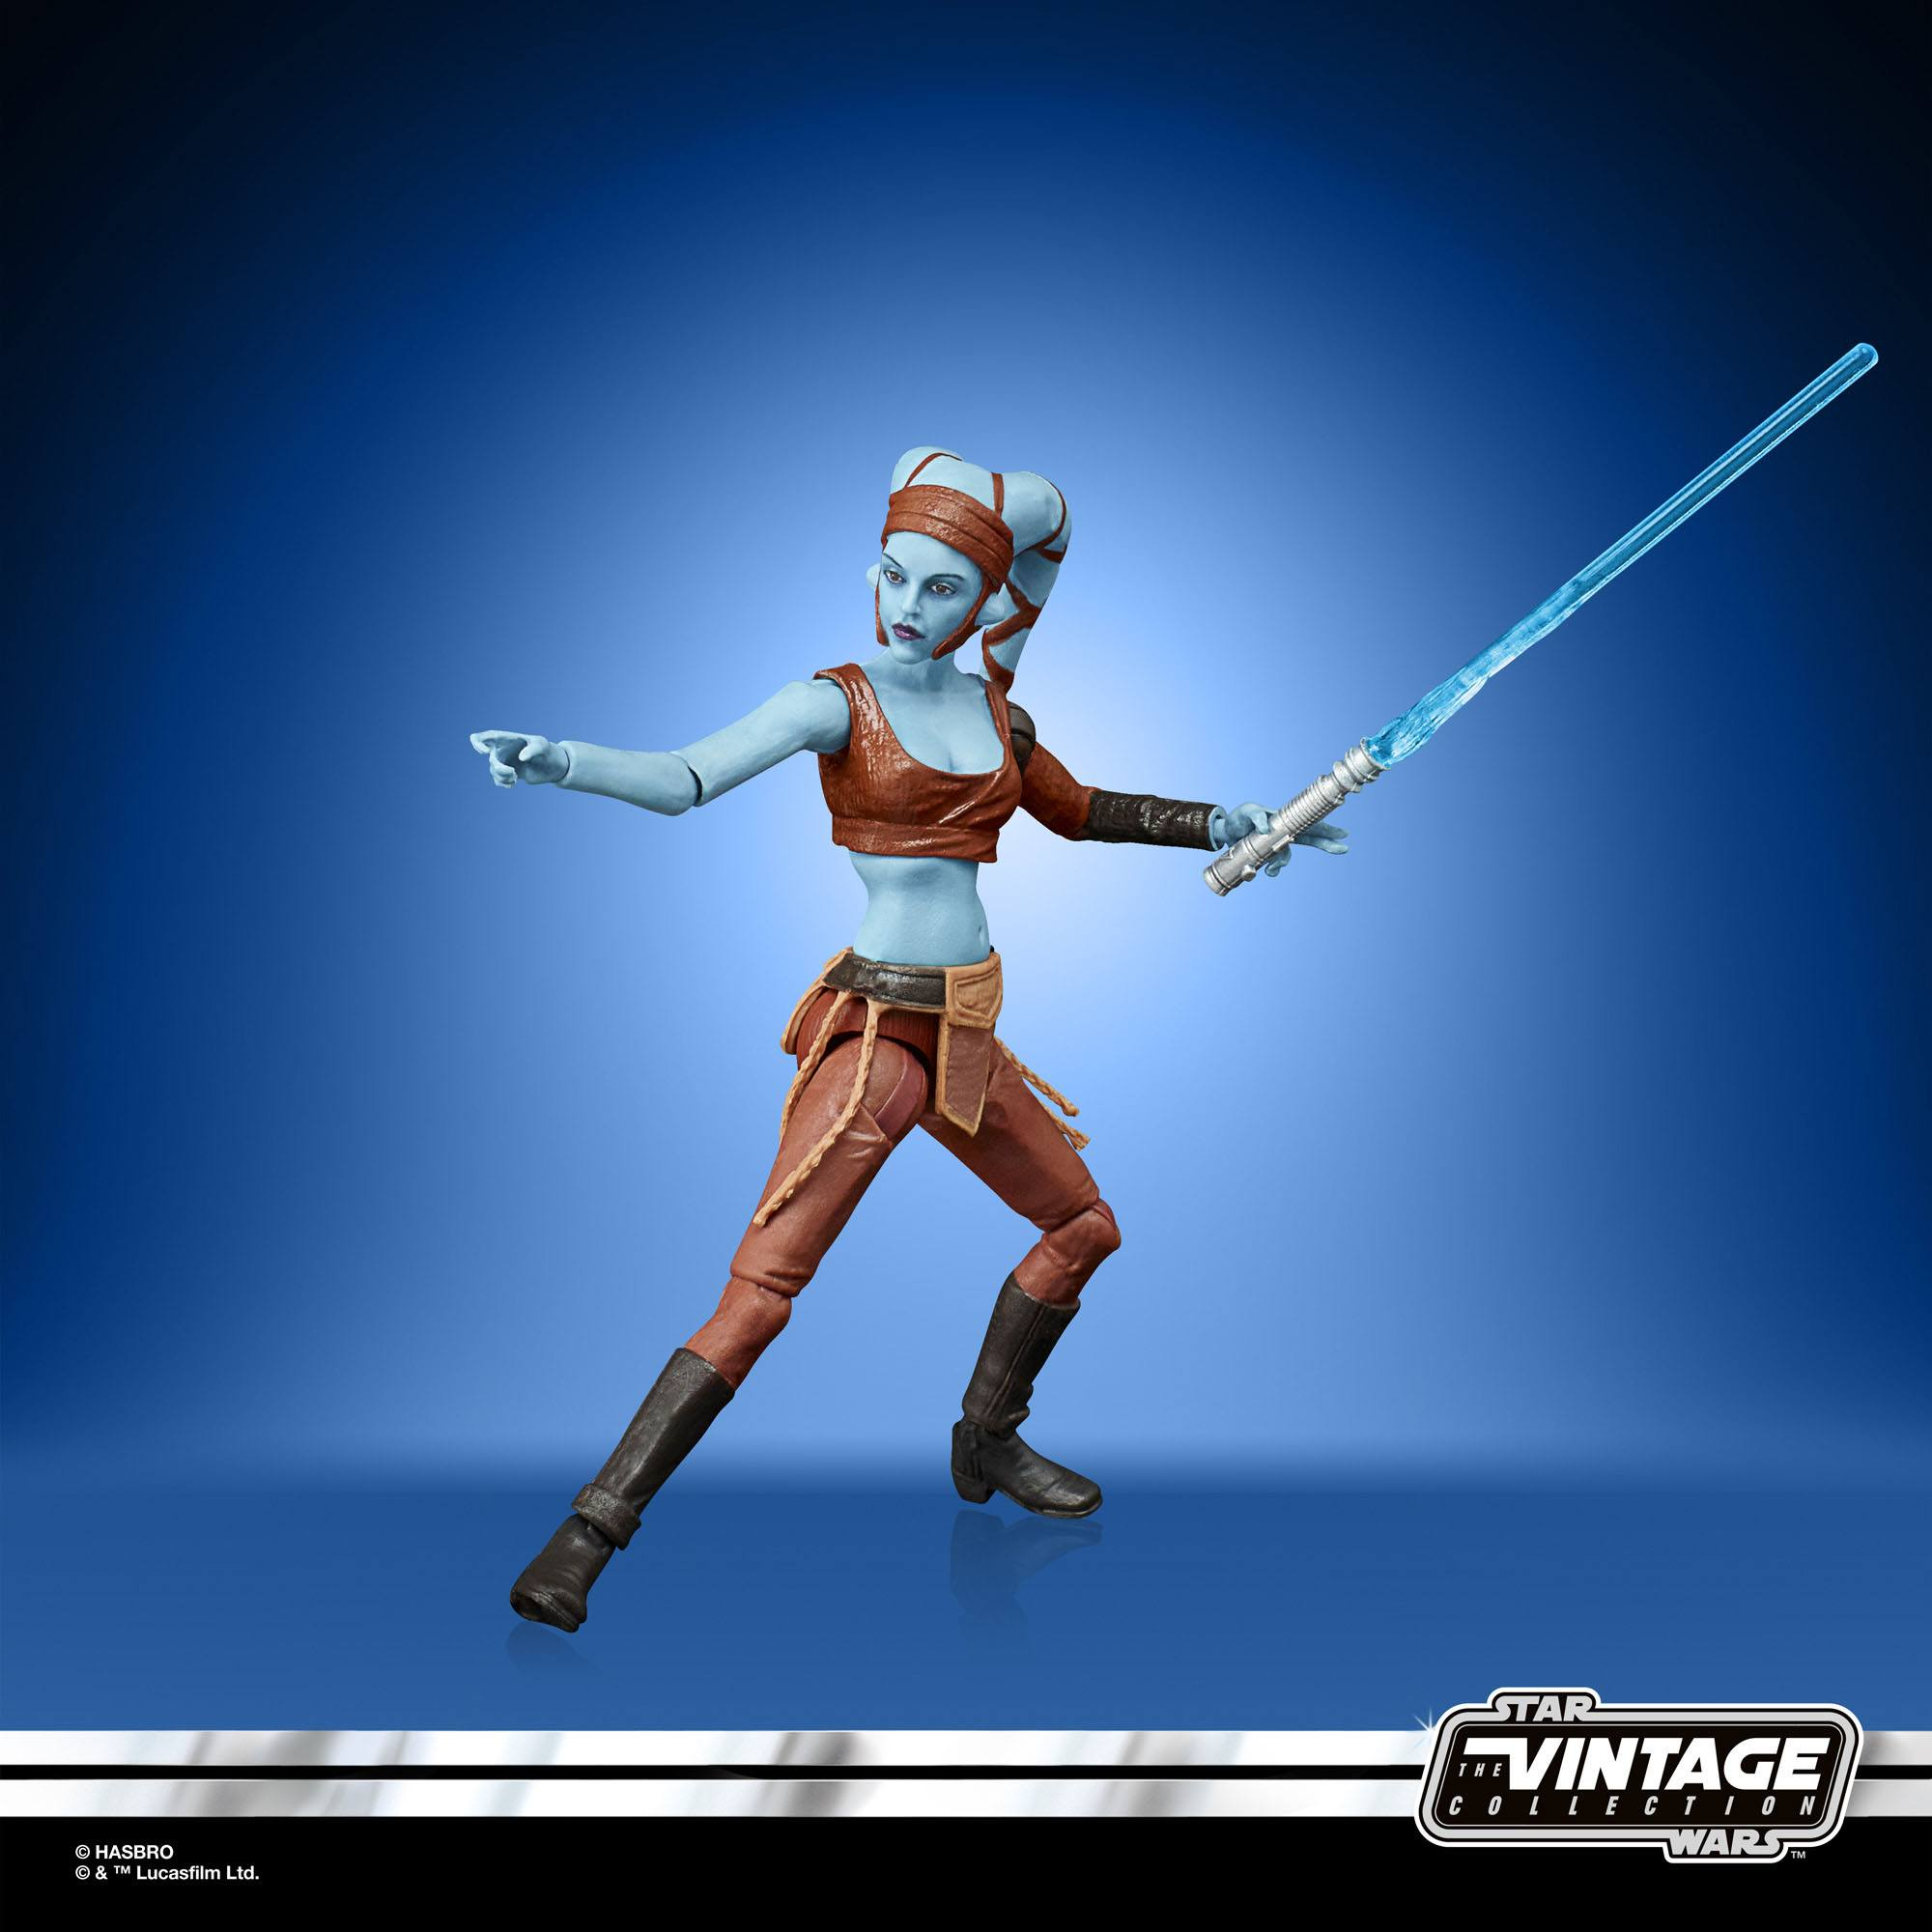 Star Wars The Clone Wars Vintage Collection Actionfigur 2022 Aayla Secura 10 cm F54165L00